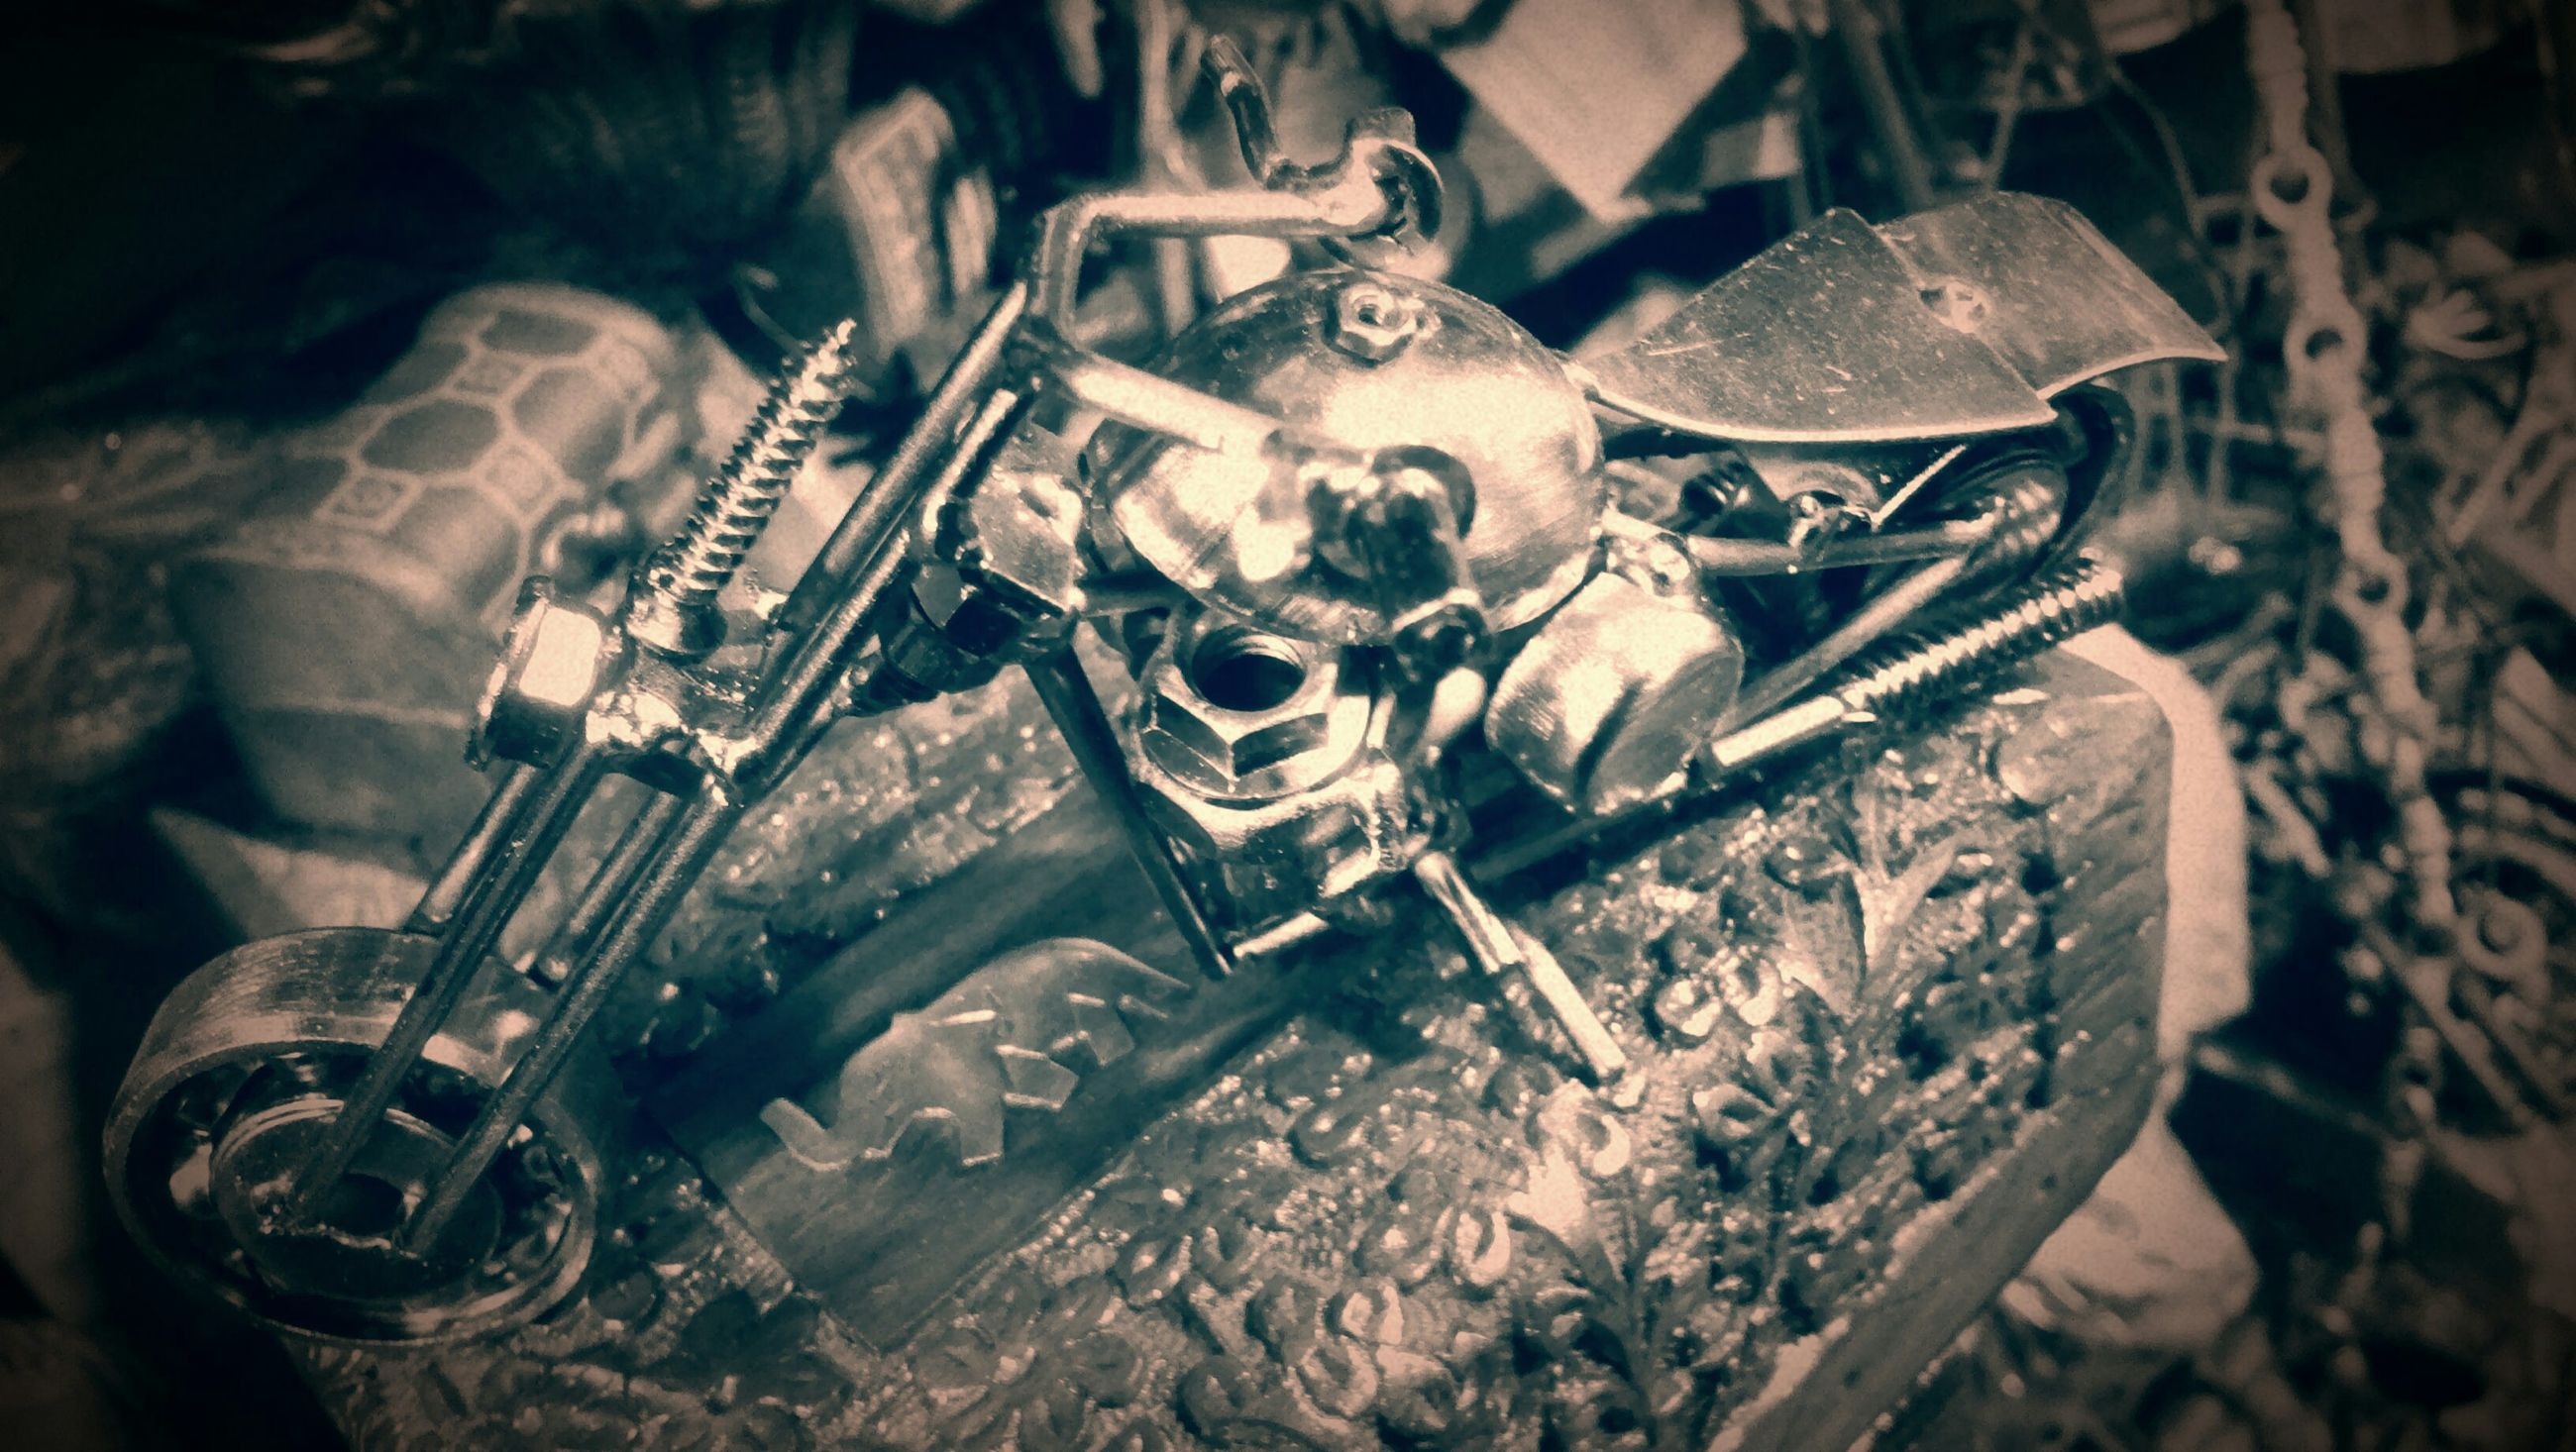 indoors, metal, abandoned, obsolete, damaged, close-up, old, run-down, machinery, high angle view, machine part, still life, metallic, rusty, selective focus, equipment, deterioration, industry, work tool, old-fashioned